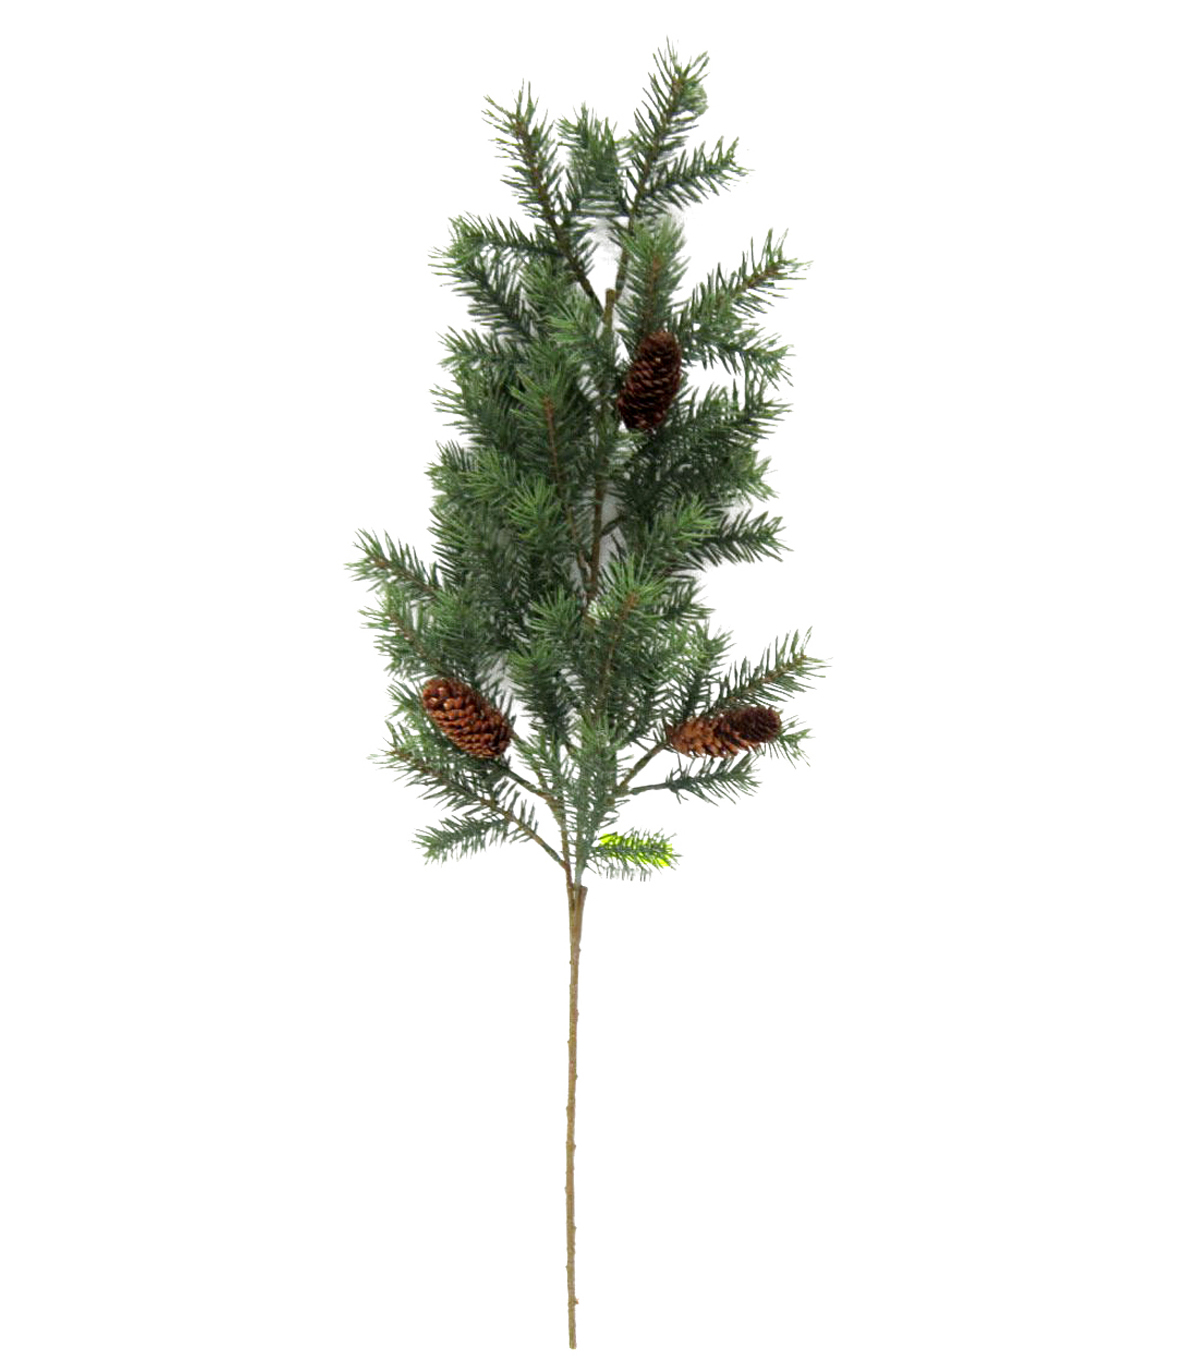 Blooming Holiday Angel Pine Spray With Pinecones